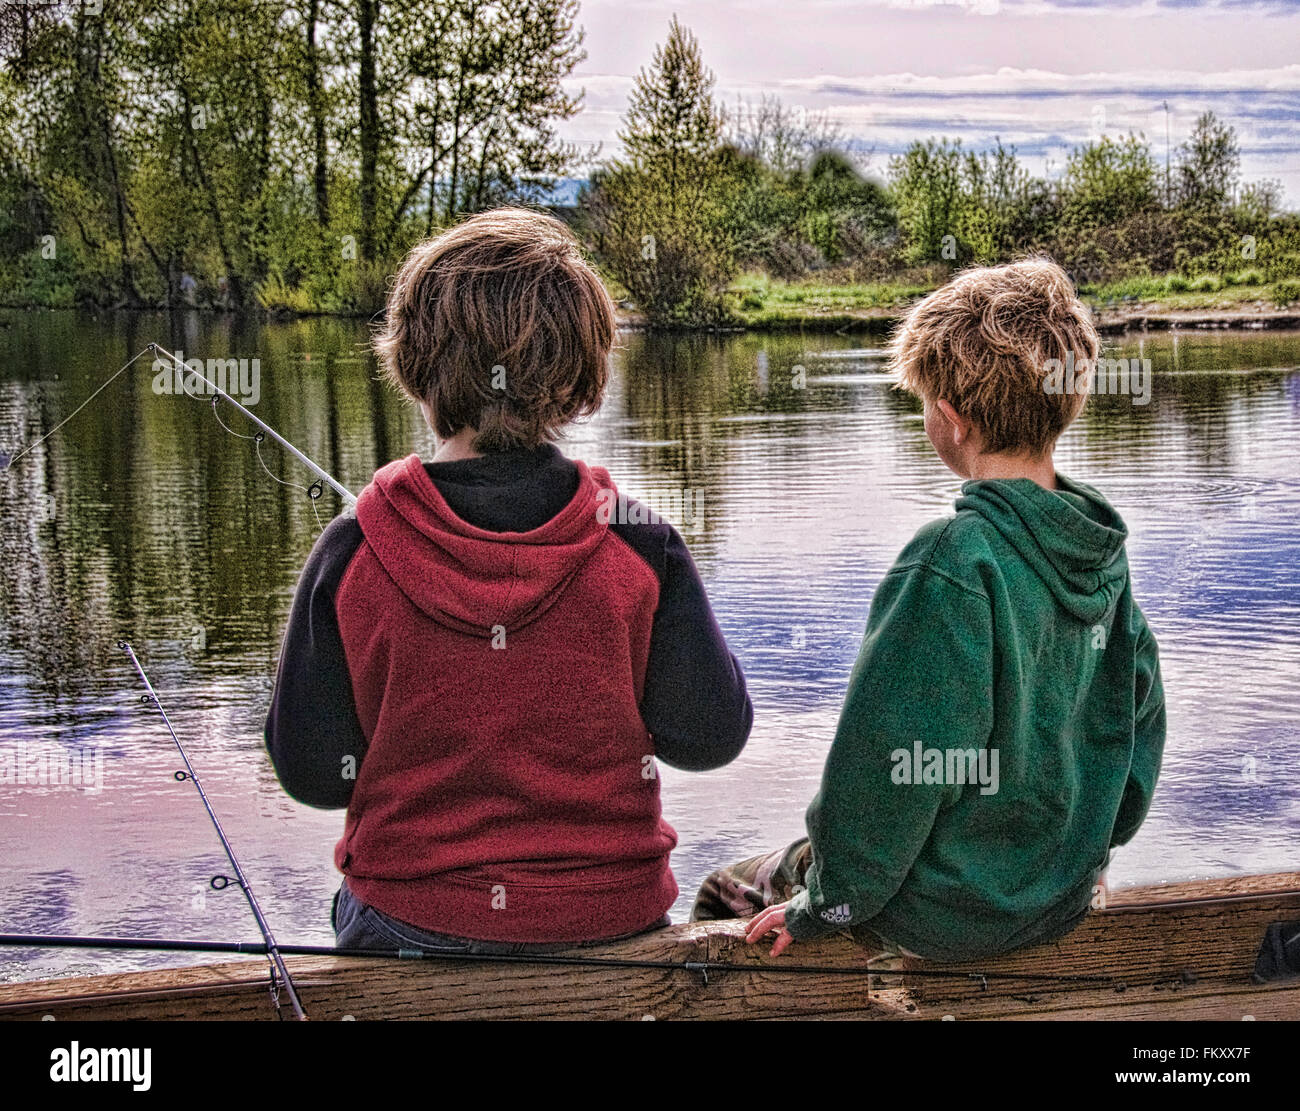 Two young boys fishing by the side of a lake, digitally enhanced as an illustration. - Stock Image